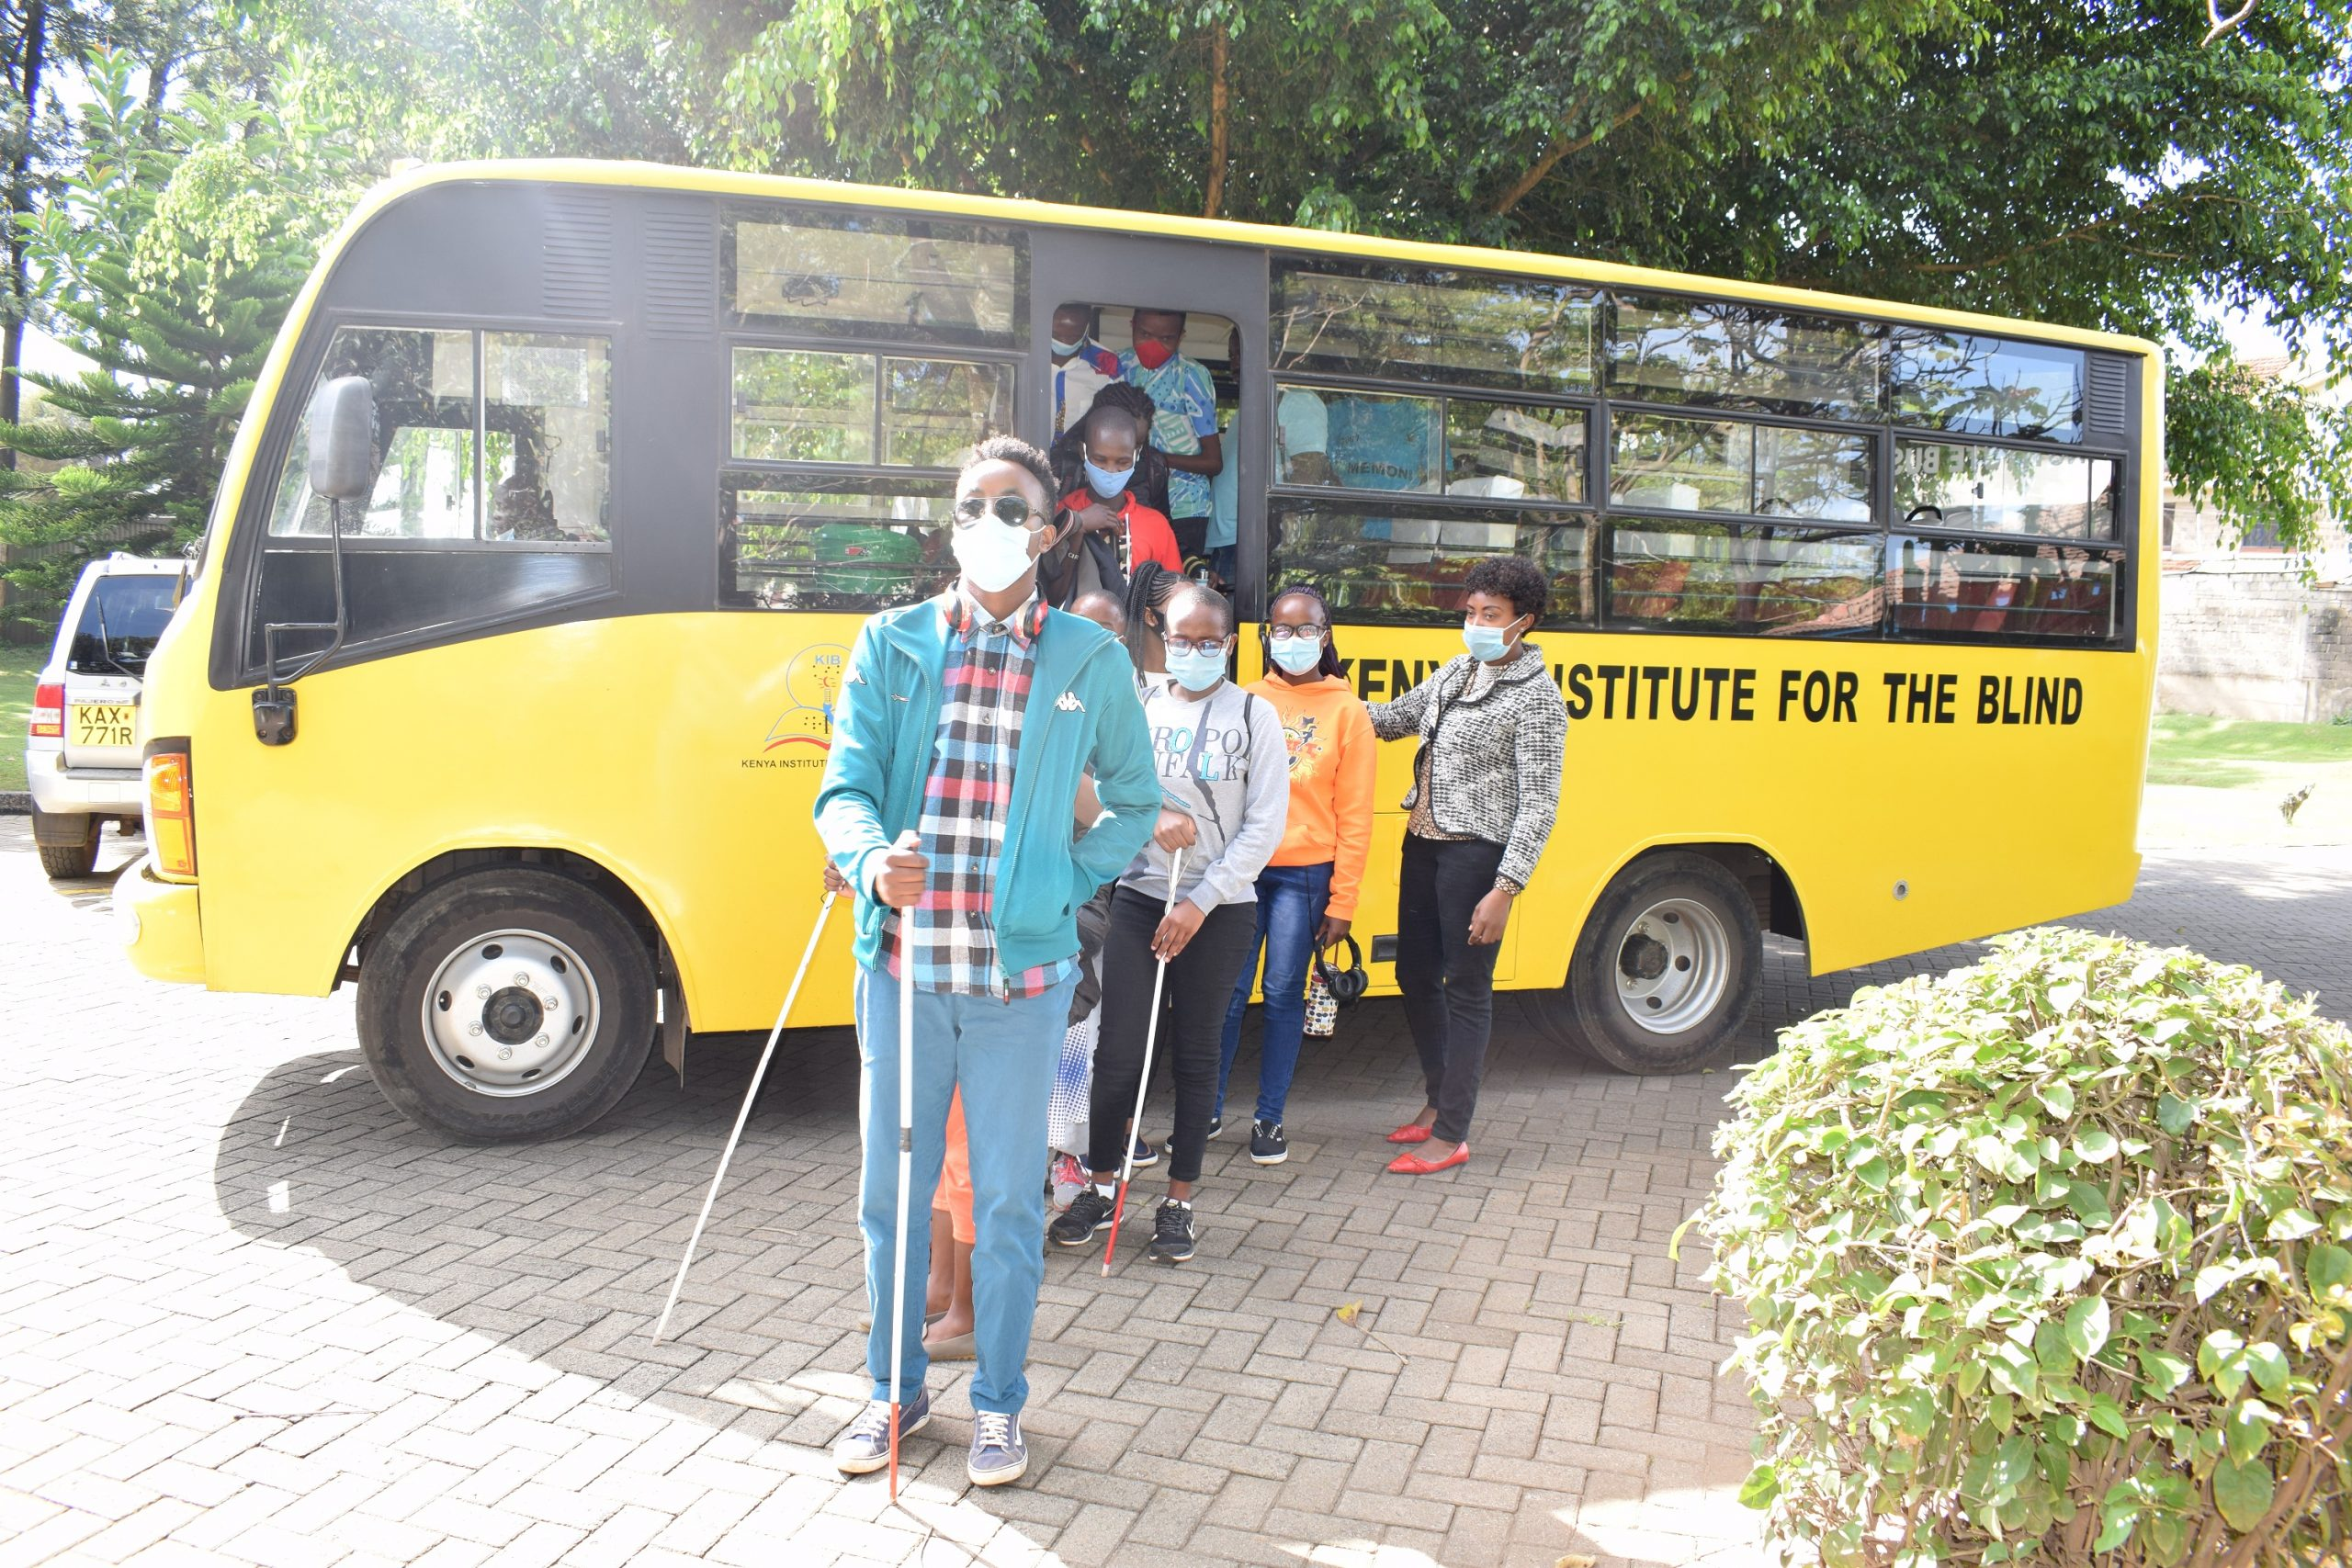 visually impaired students alighting from a school bus